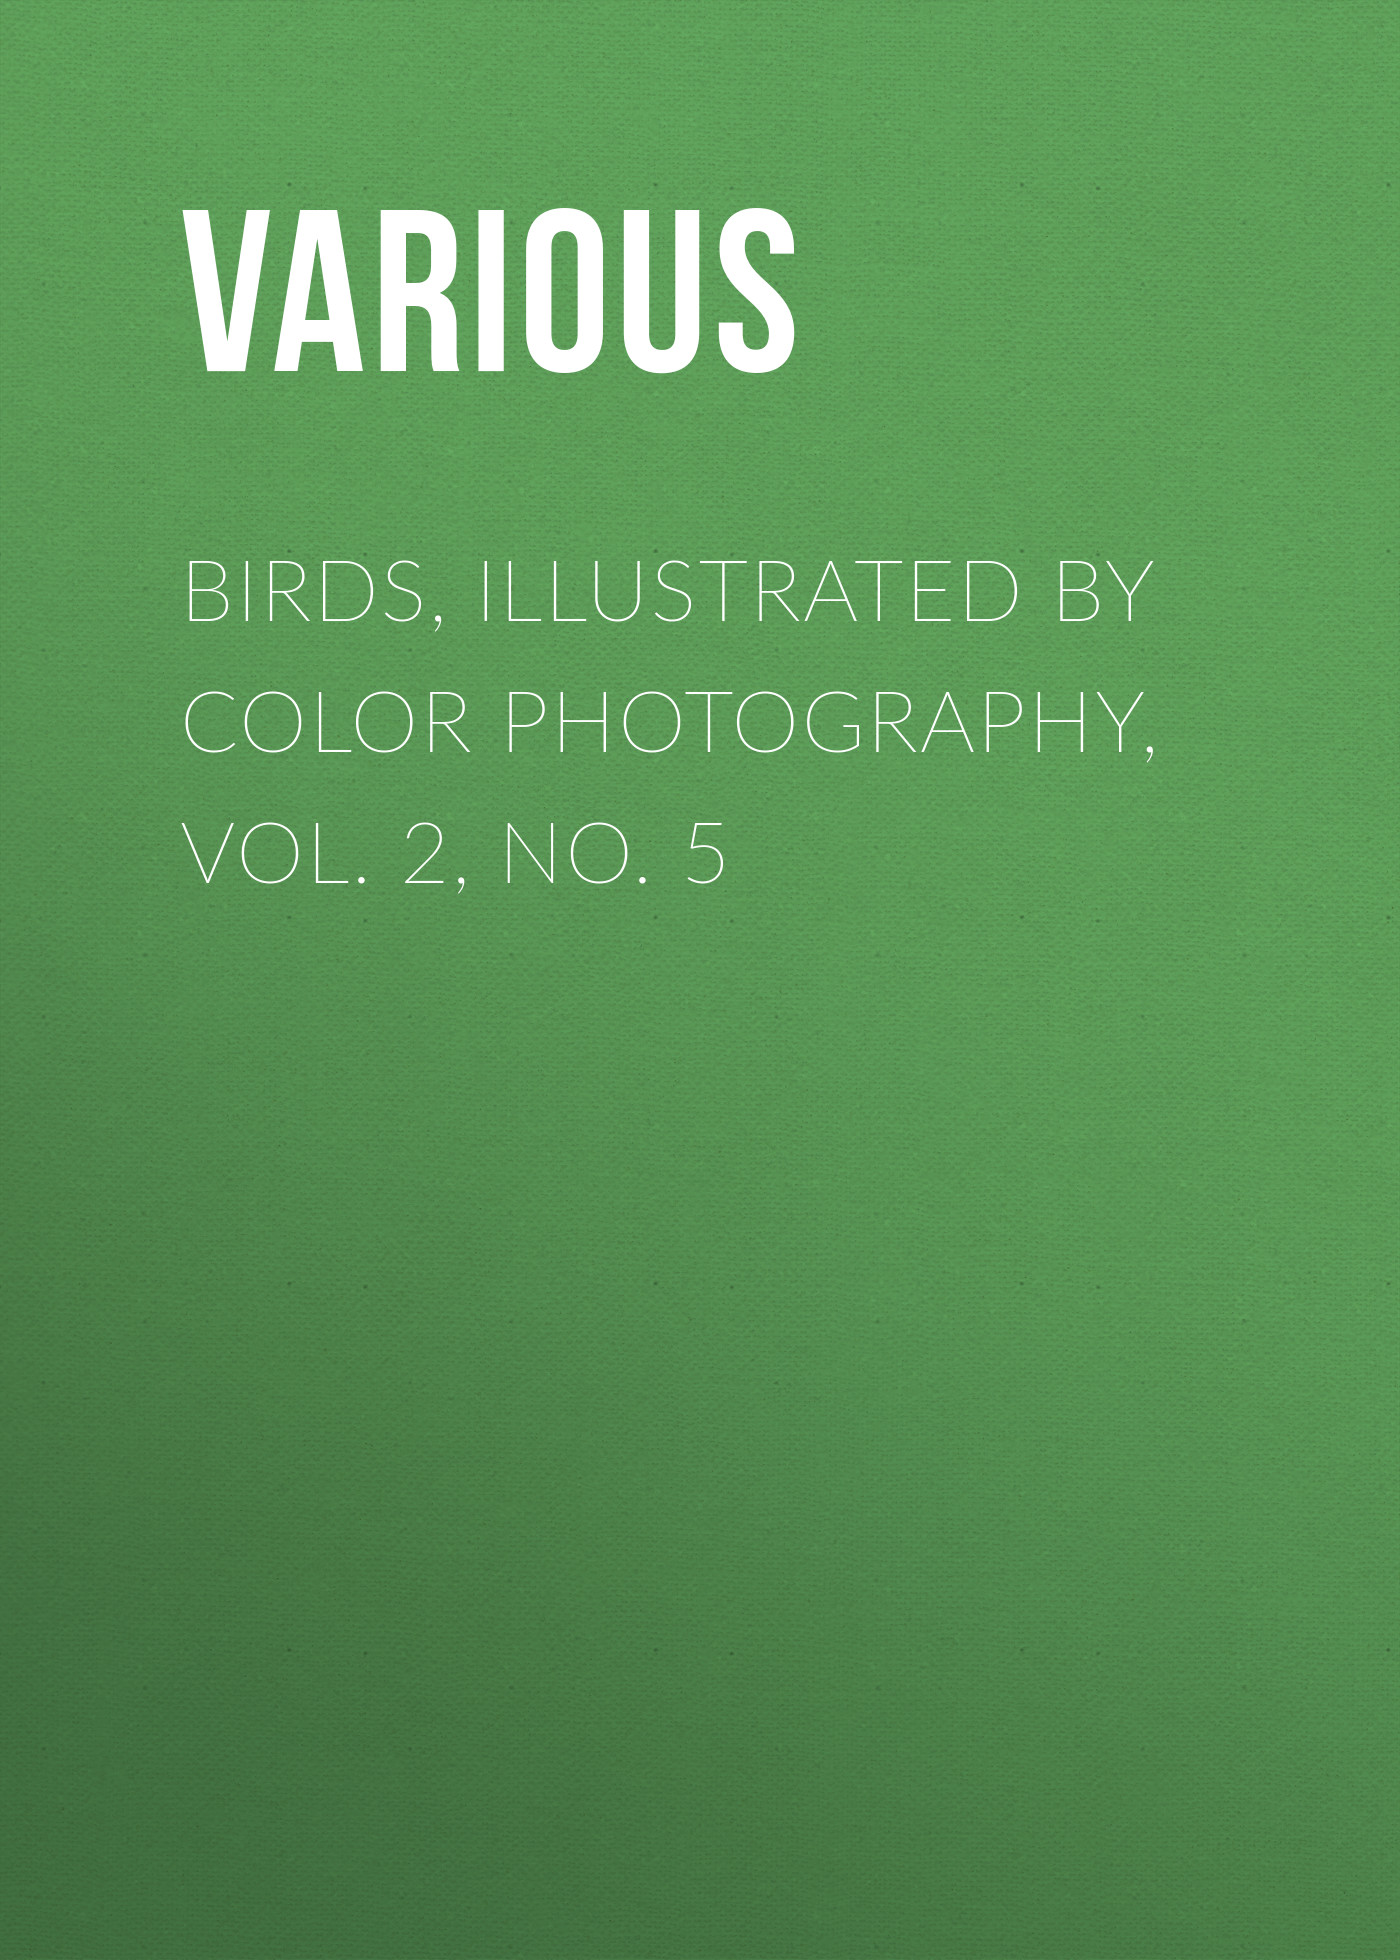 Various Birds, Illustrated by Color Photography, Vol. 2, No. 5 d 6521 dark grey backdrop newborn photography backdrop retro pure color pet photography backgrounds 4x6ft 1 25x2m